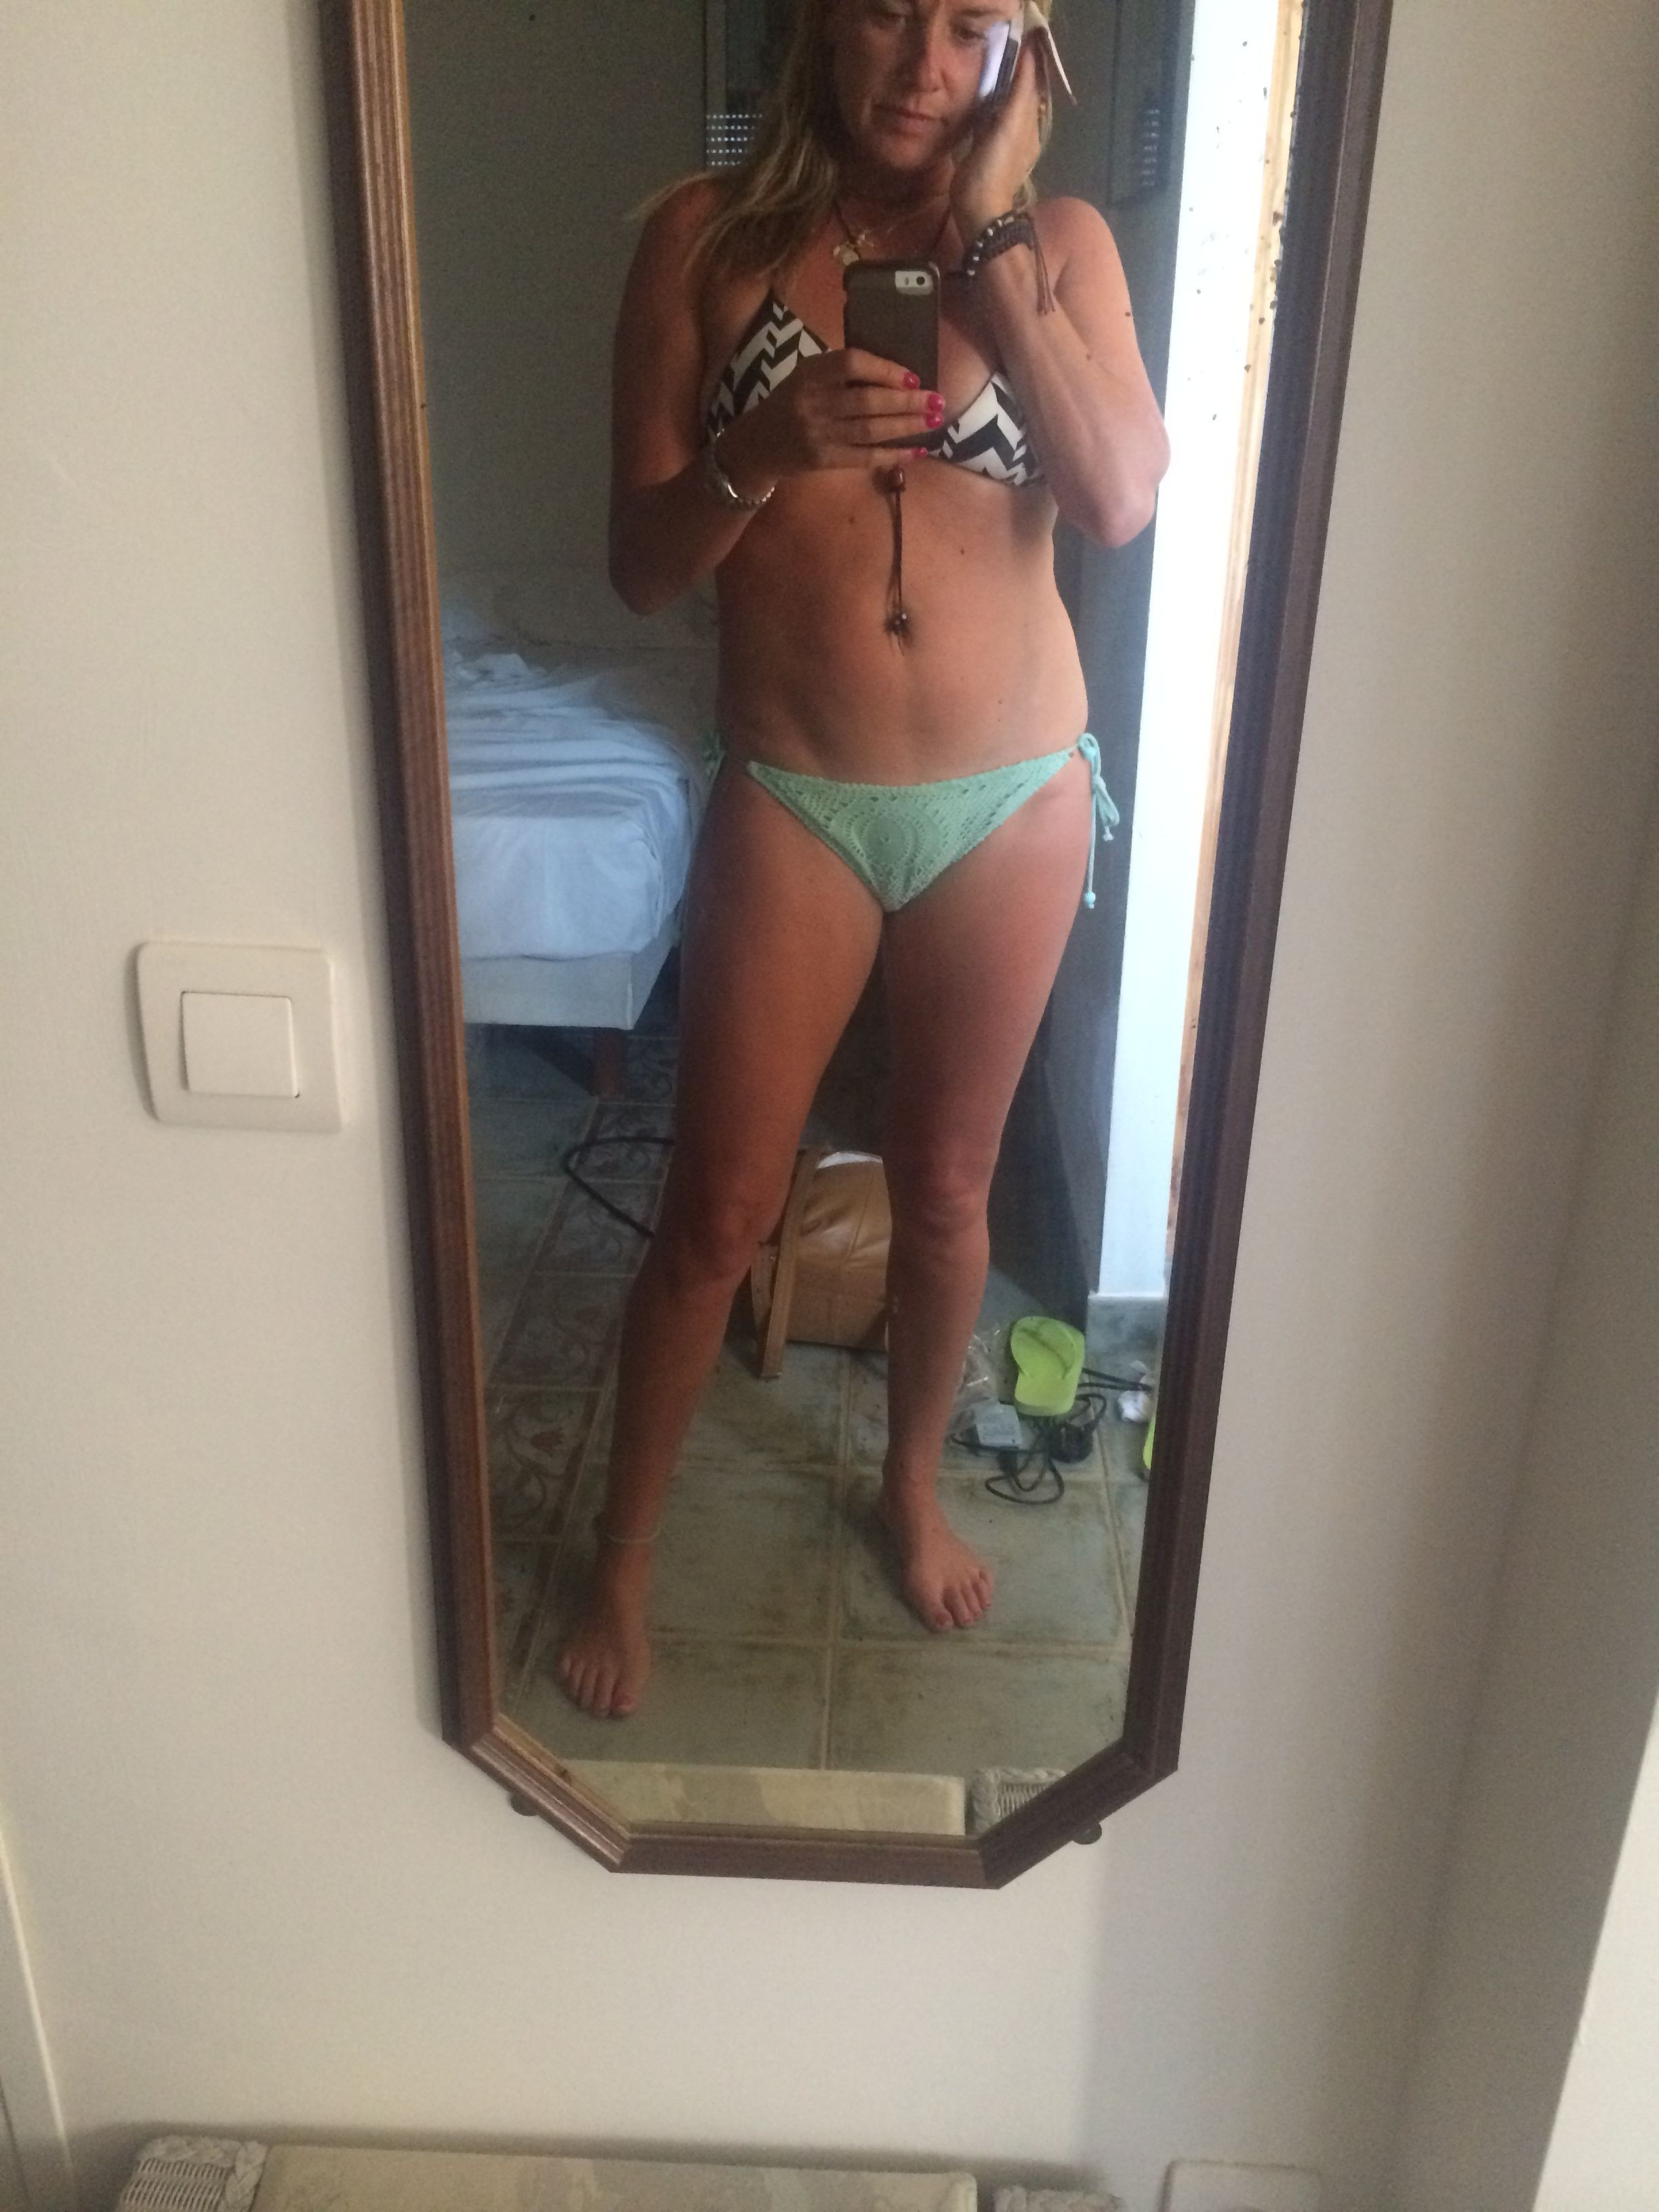 Tamzin Outhwaite Leaked Photos and Nude Pics